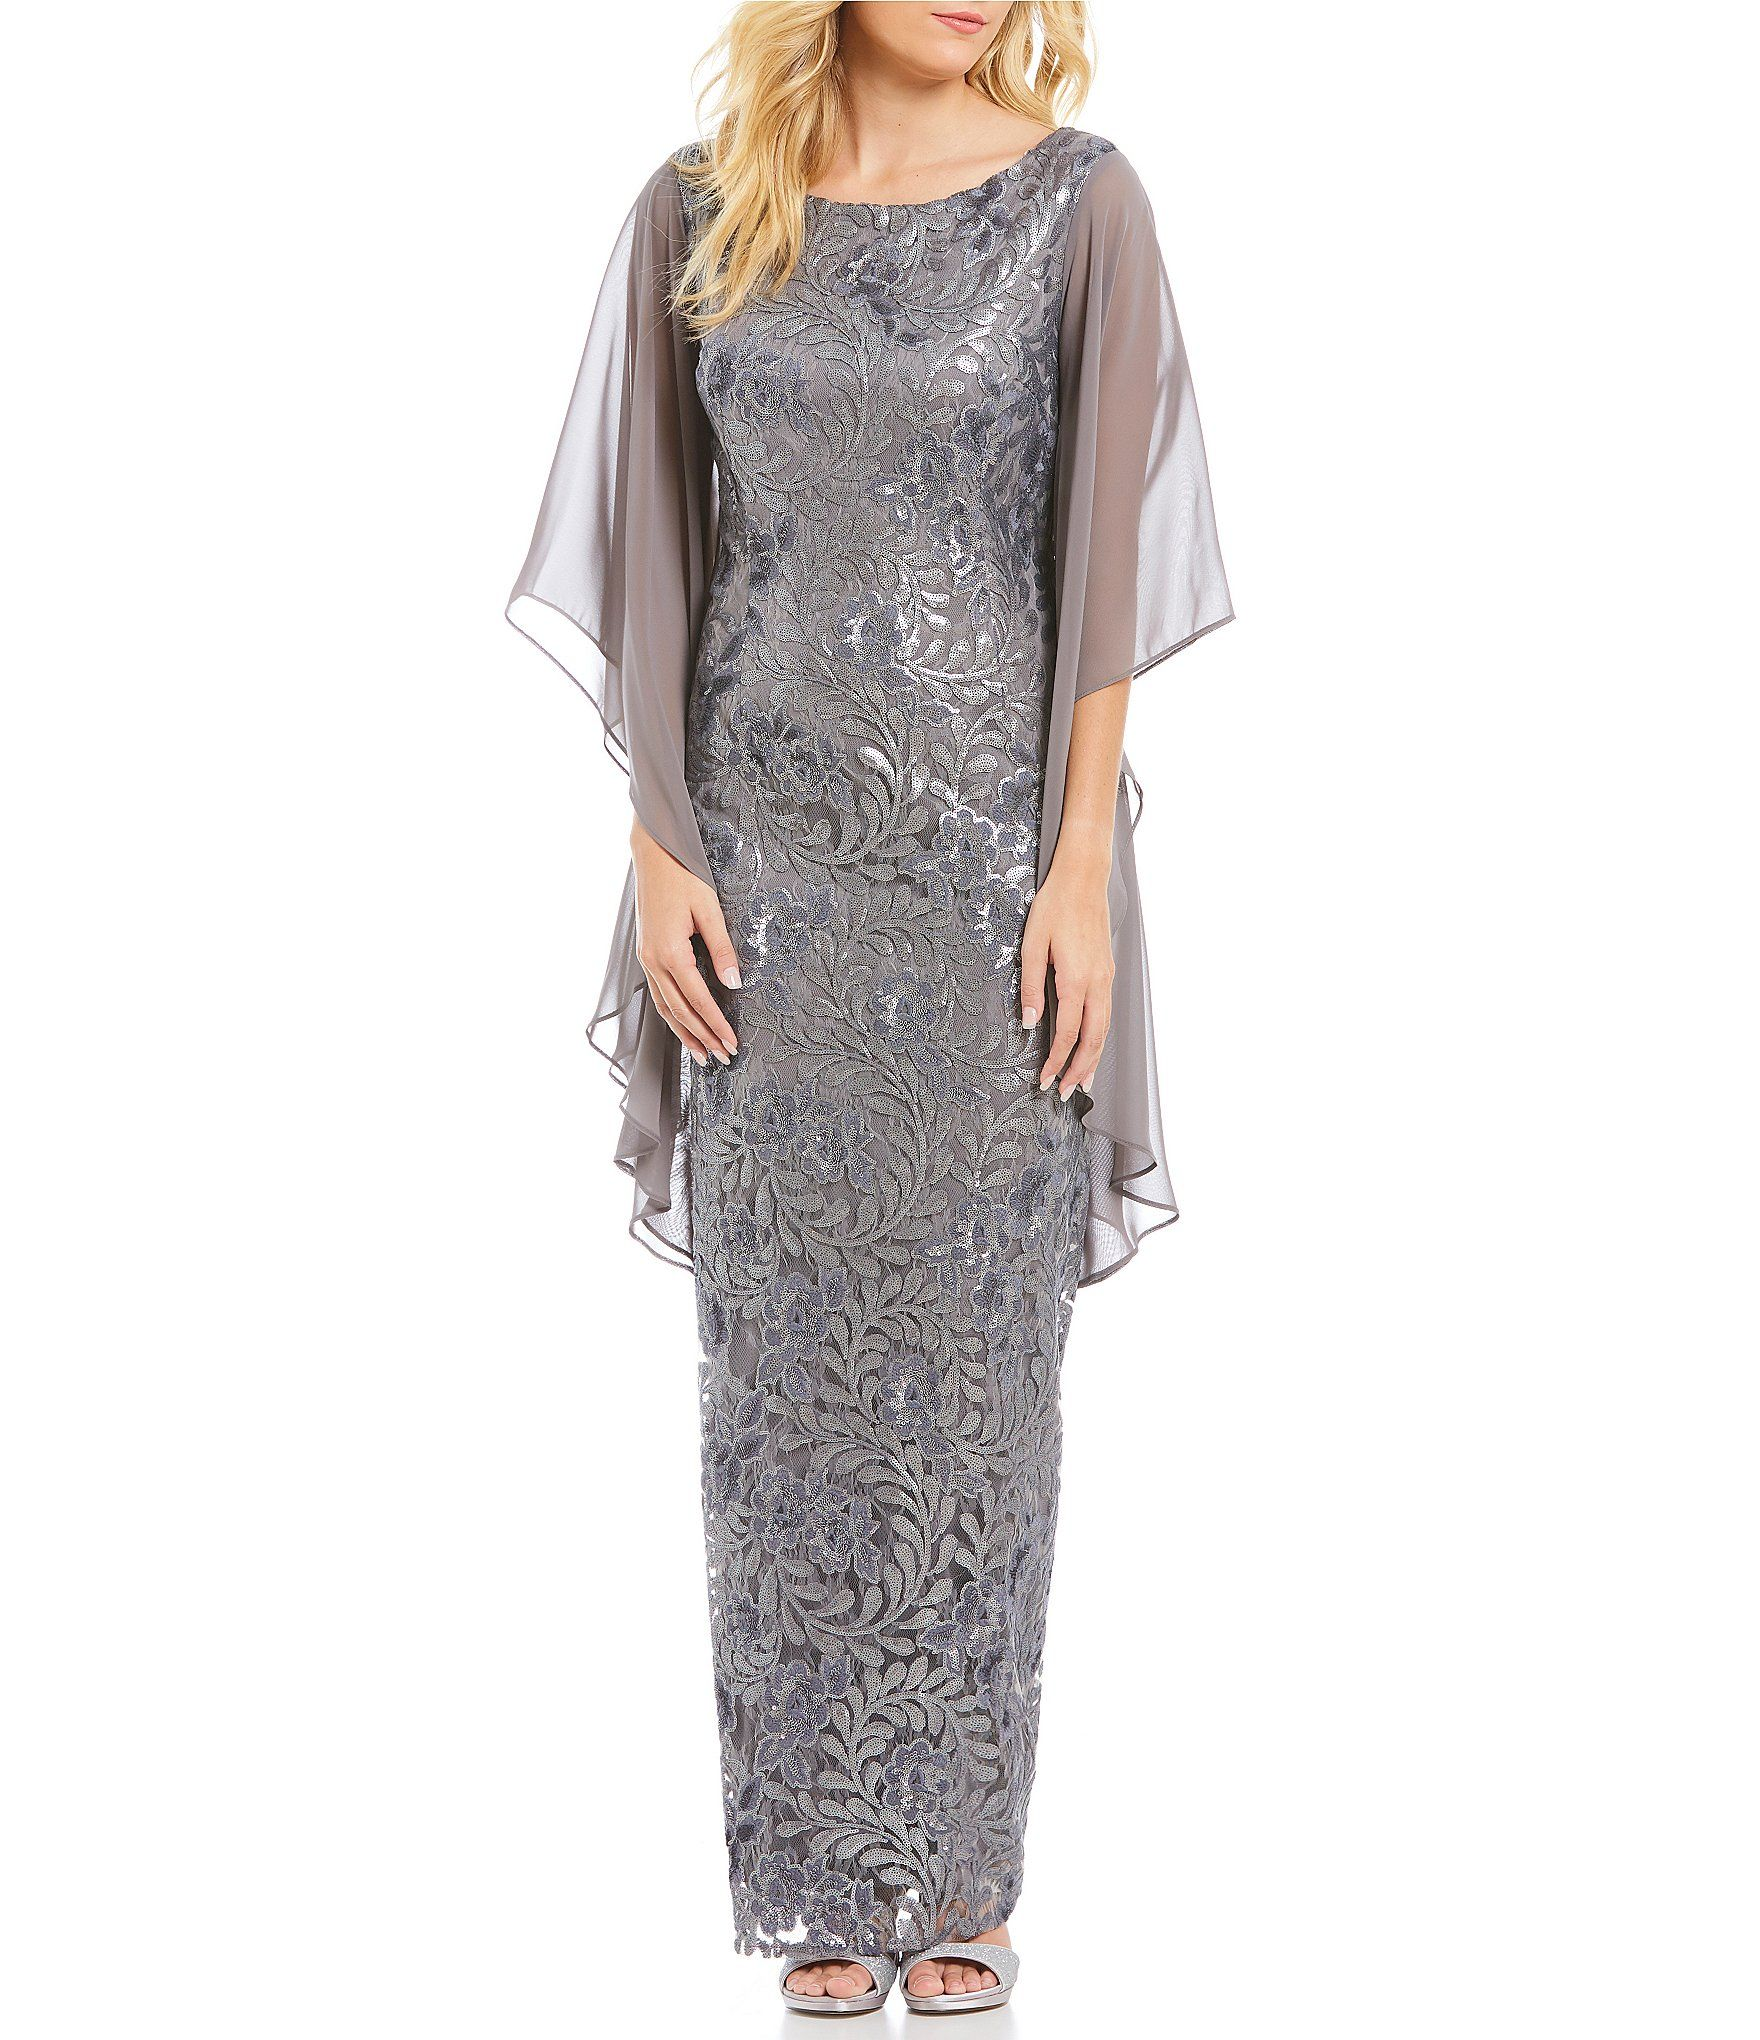 d4be573204f Shop for Brianna Sequin Embroidered Column Gown at Dillards.com. Visit  Dillards.com to find clothing